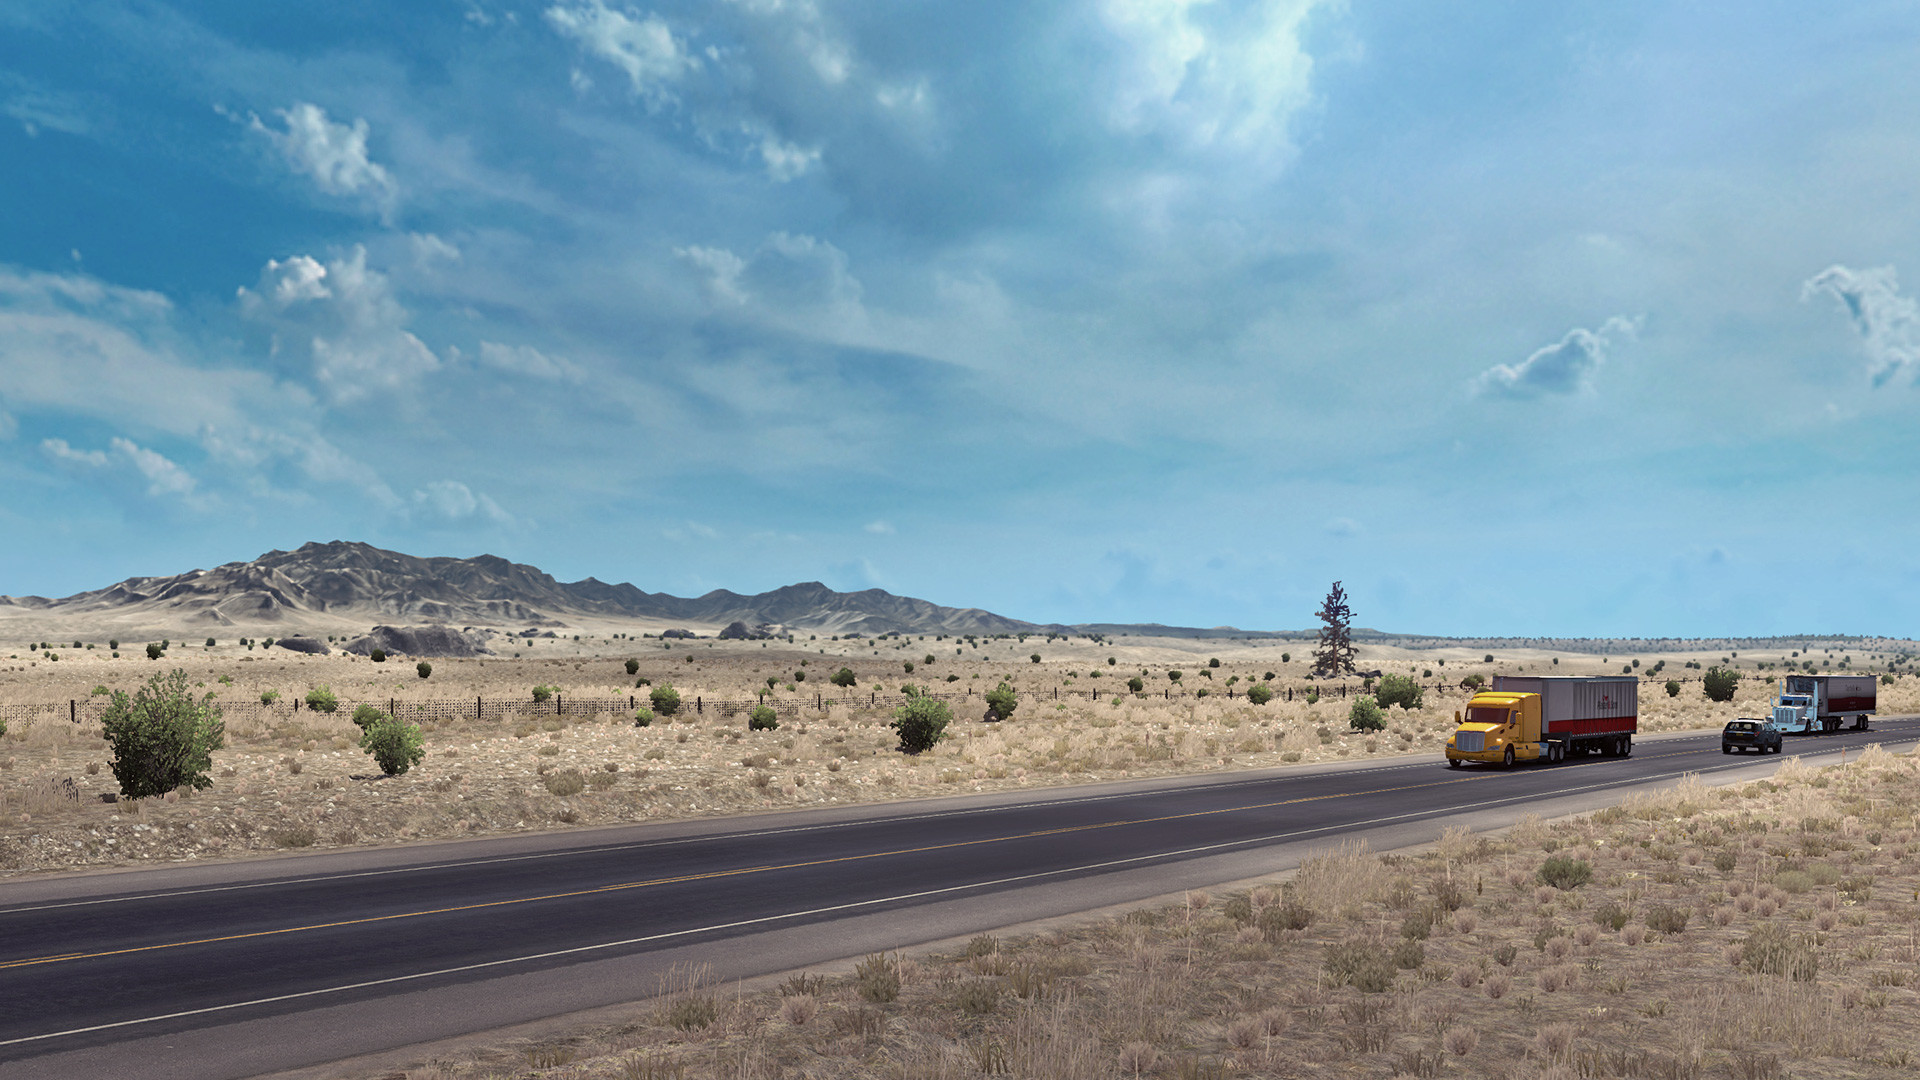 American Truck Simulator's New Mexico DLC hits the road next